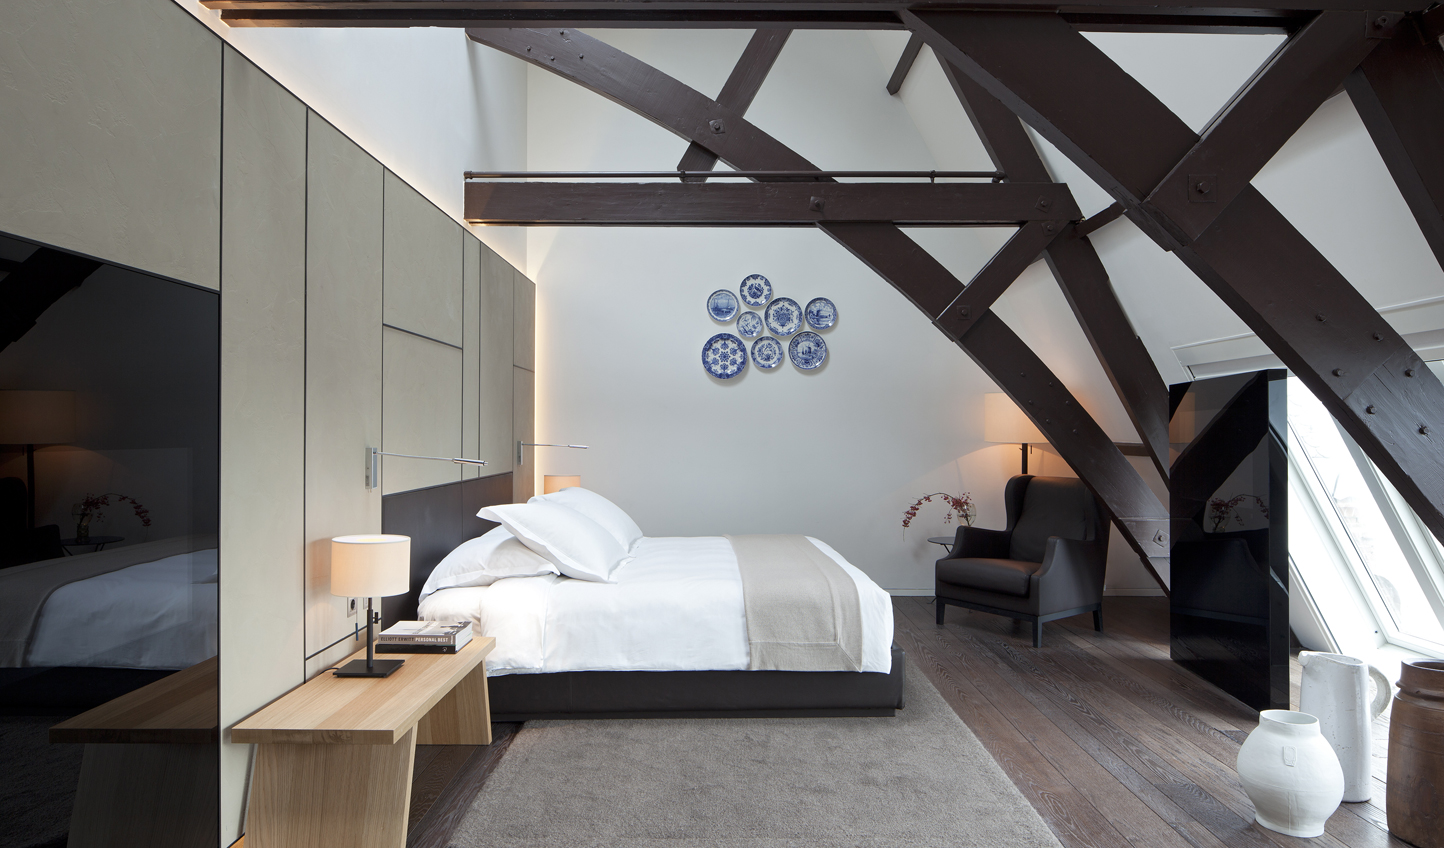 Sleep up in the eaves at Conservatorium Hotel